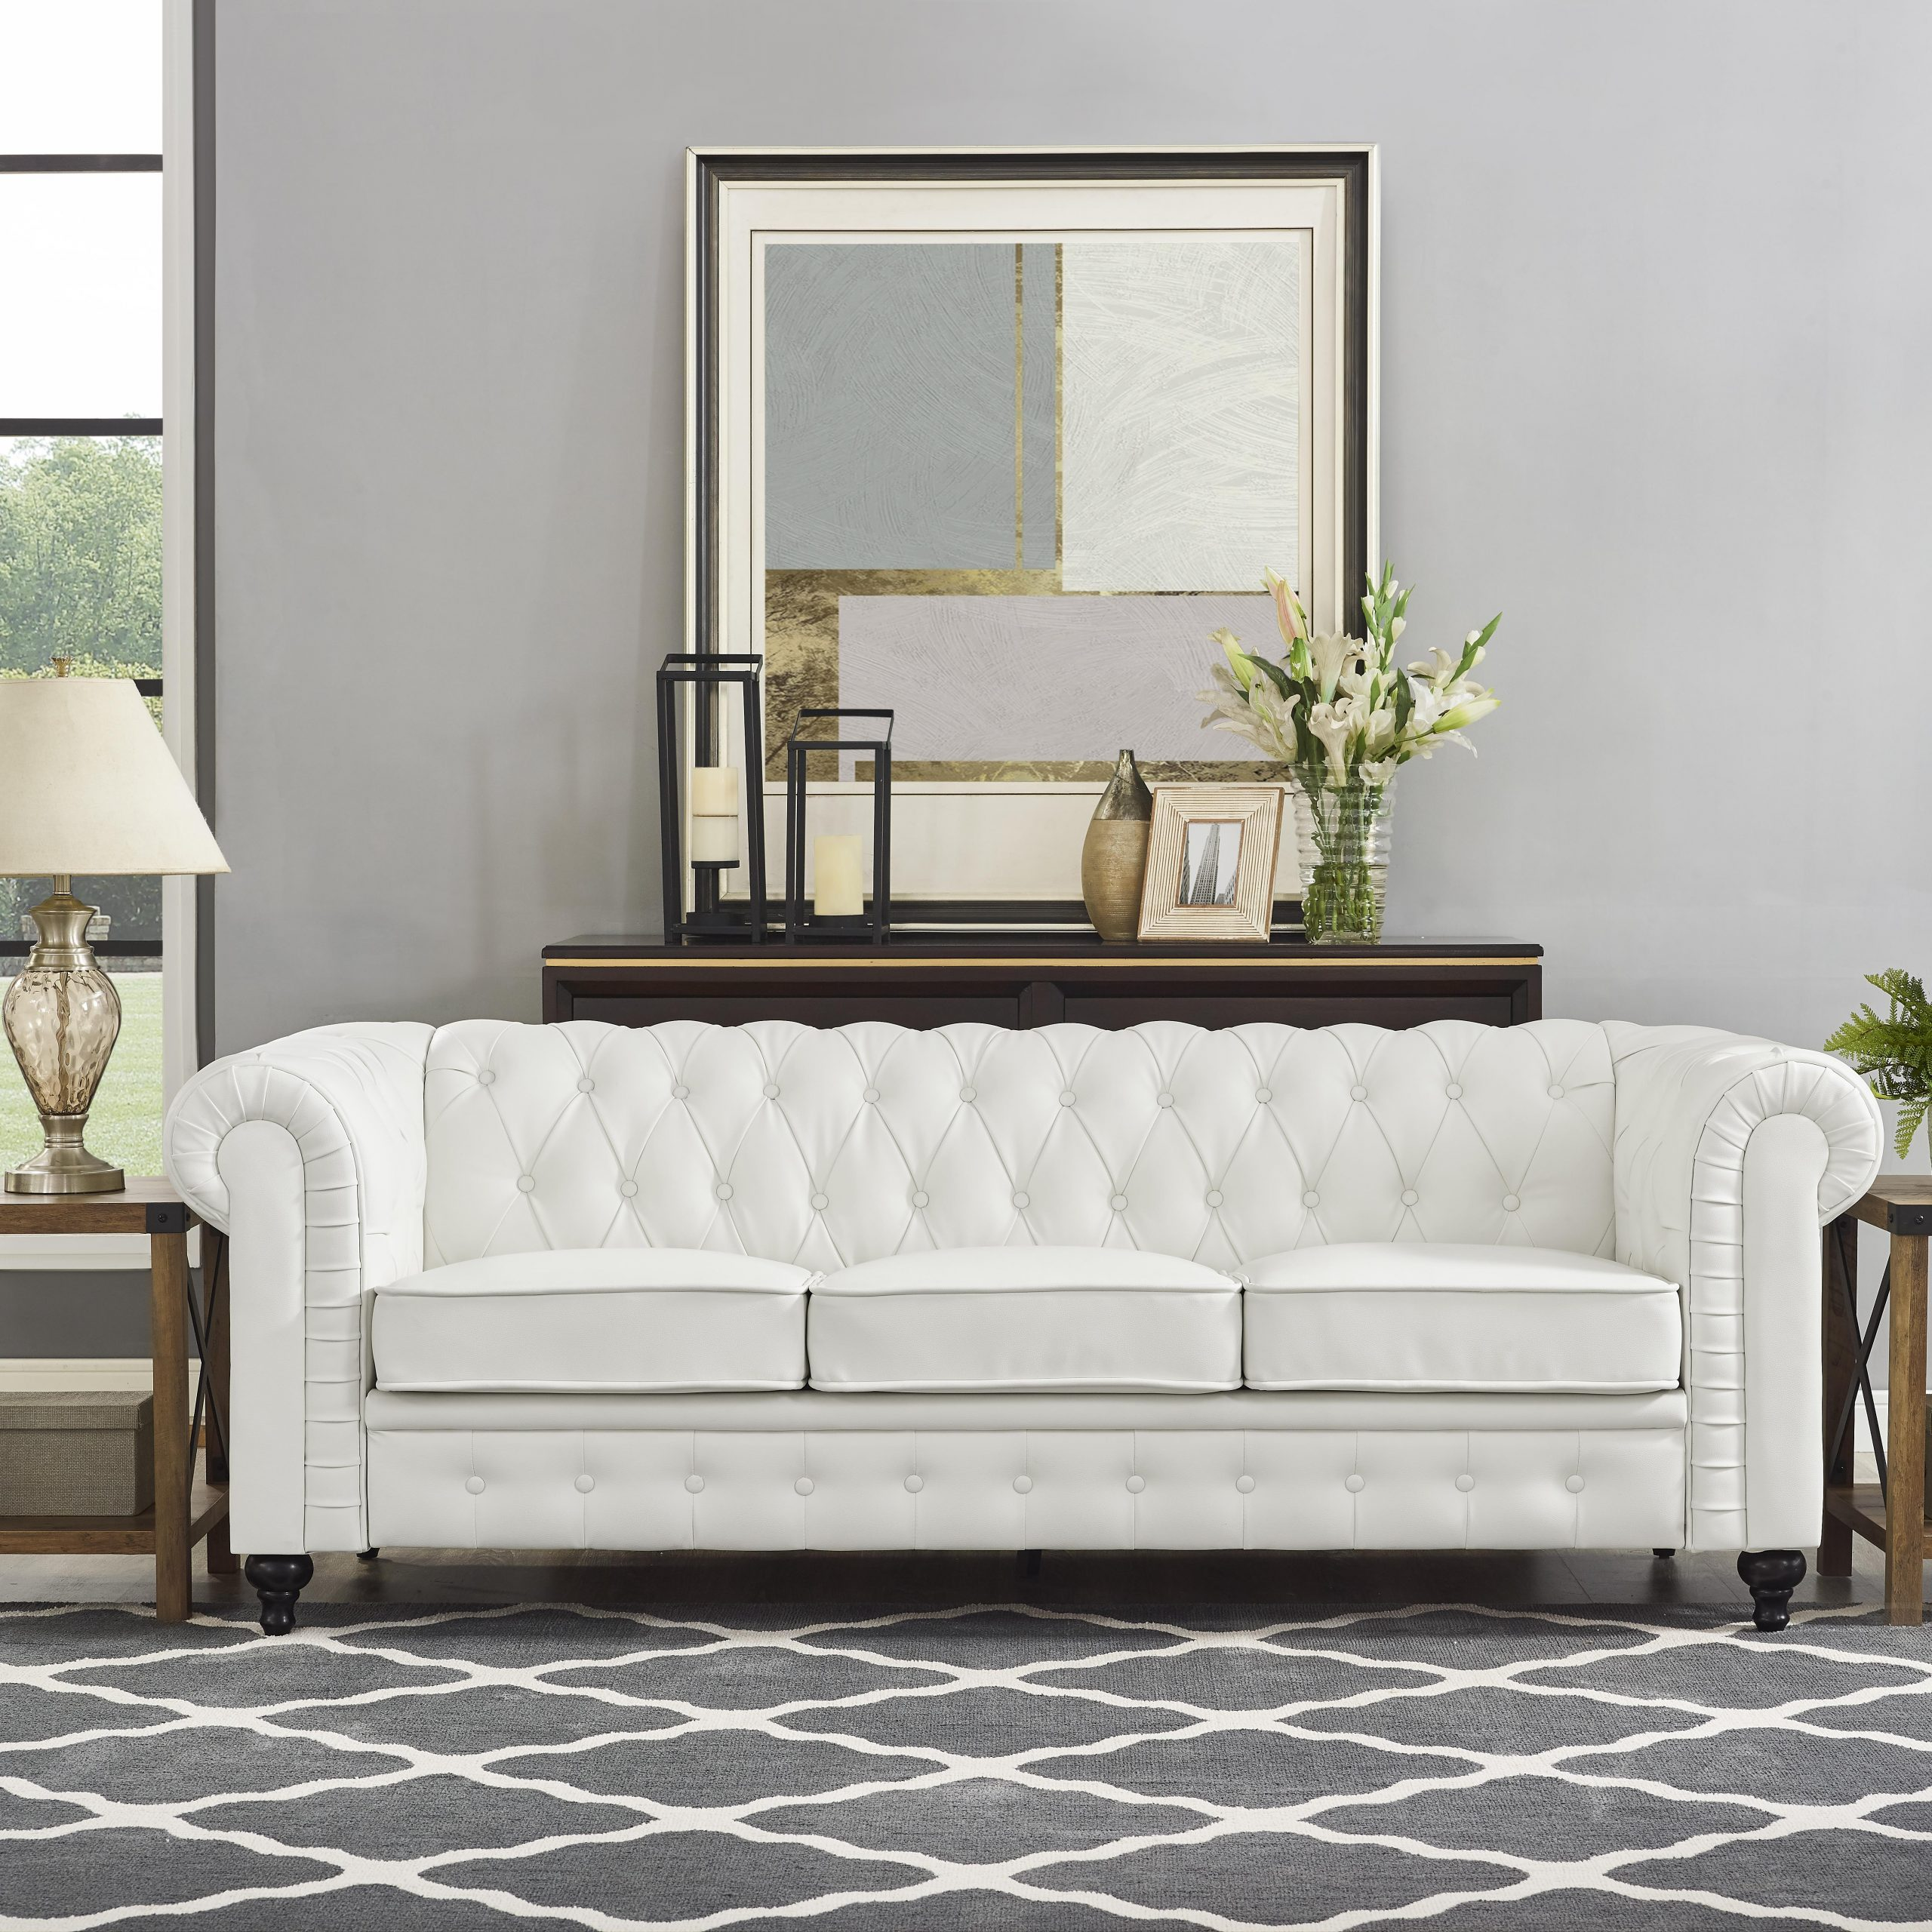 Naomi Home Emery Chesterfield Sofa & Accent Chair With In Chesterfield Sofas (View 1 of 15)